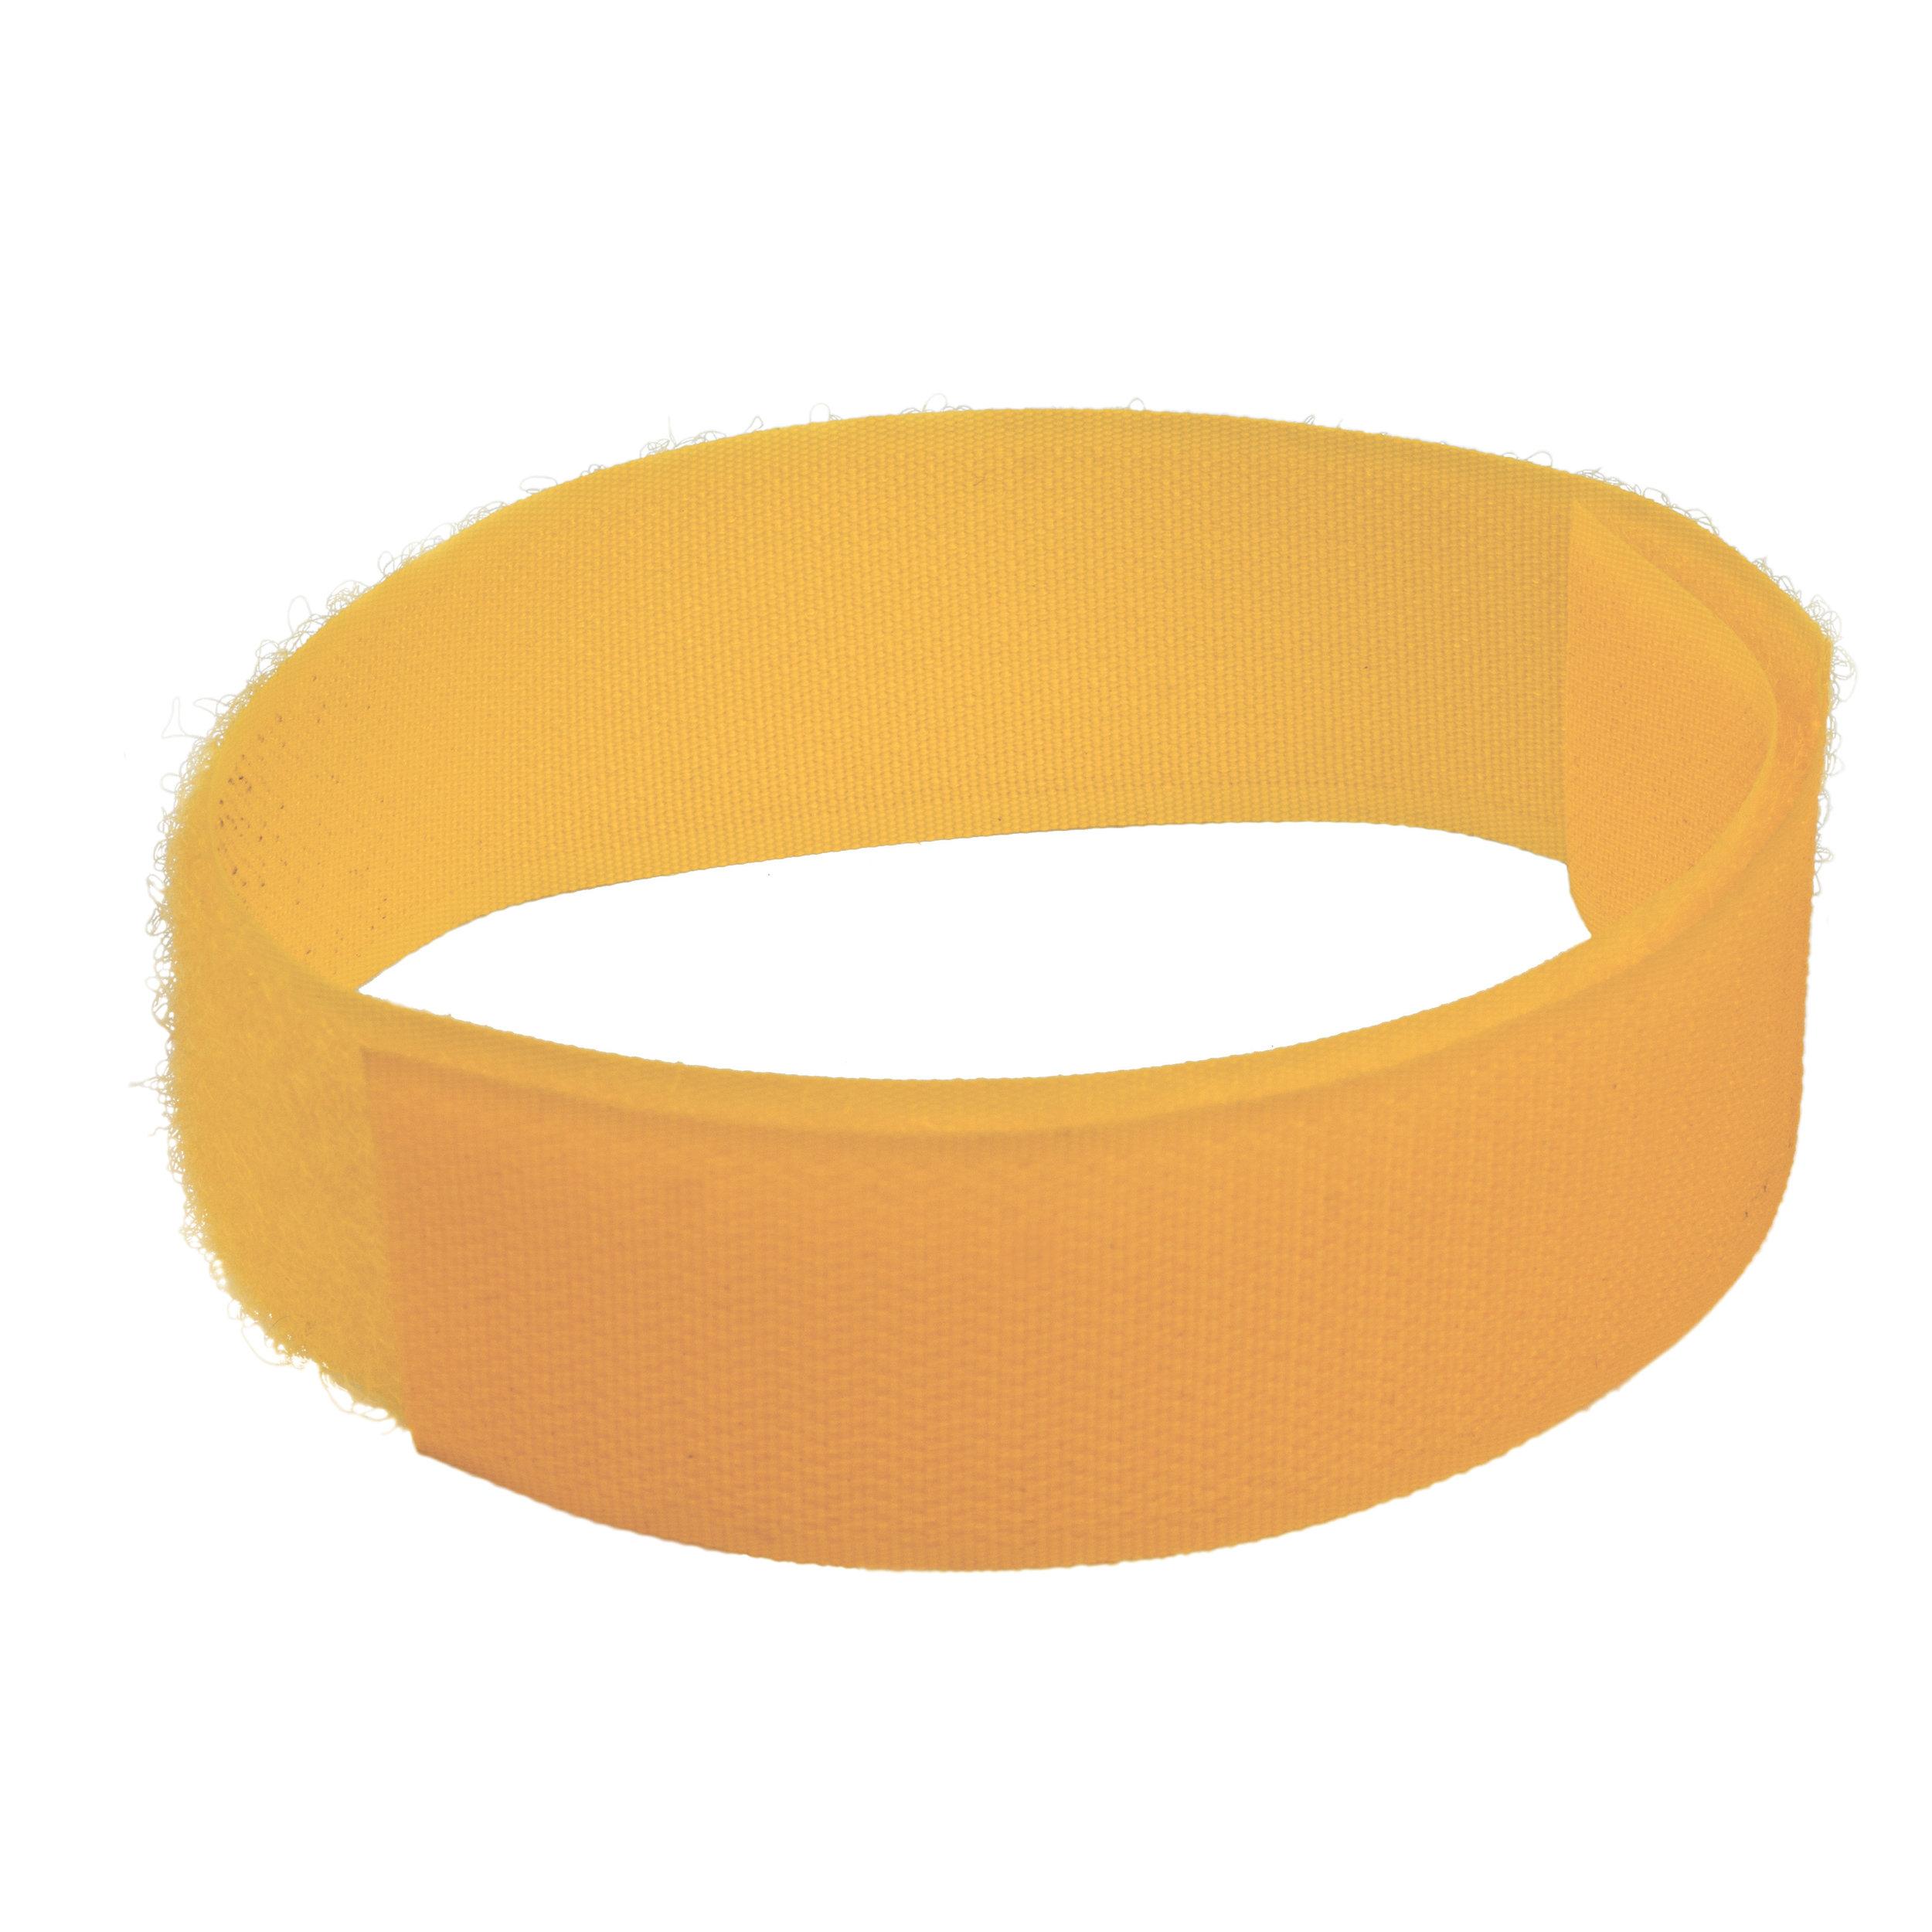 - Leg marking tape (yellow)Velcro strip indicators which can be attached to the injured leg for marking the cow so it is easier to recognise.